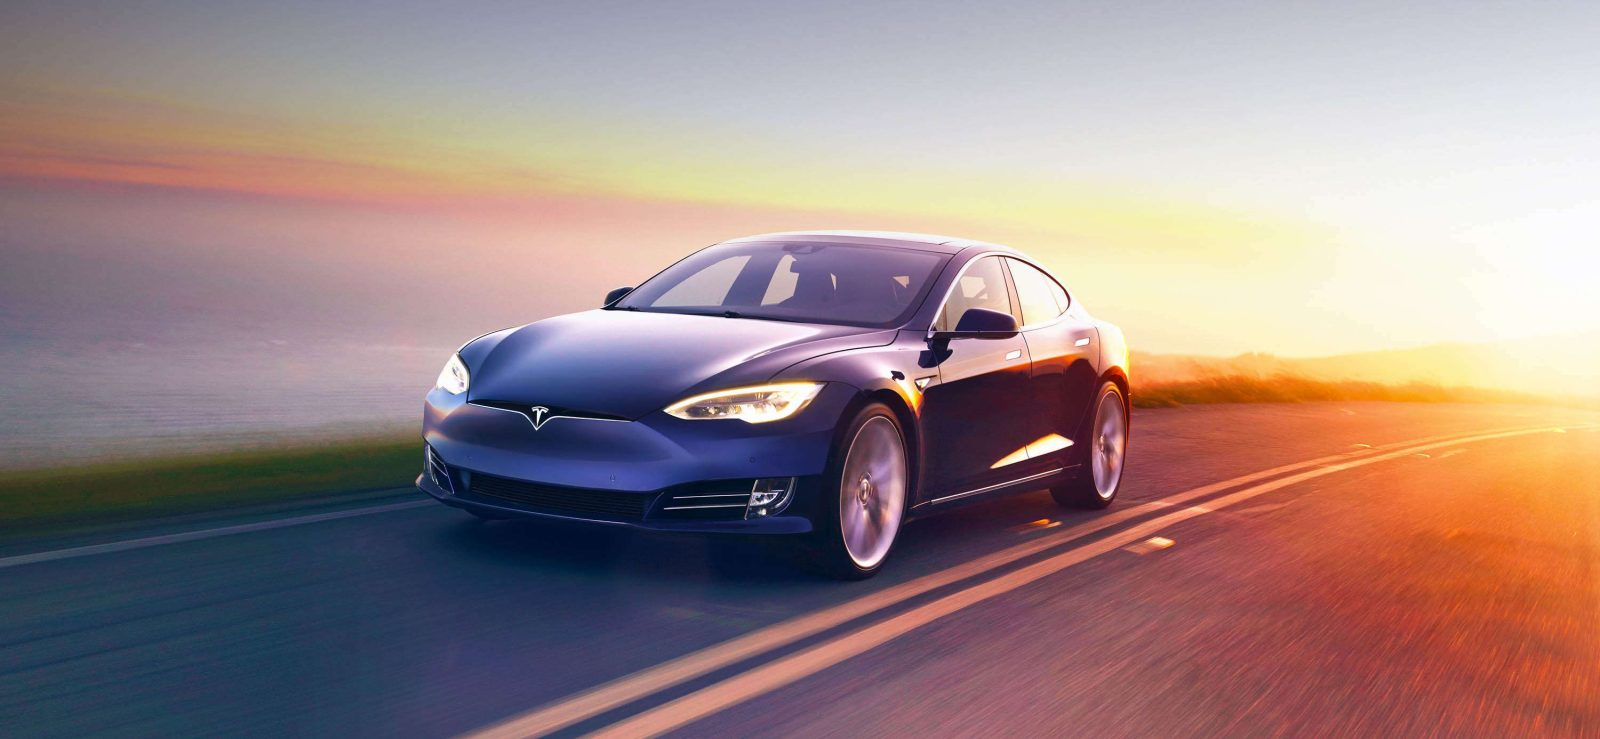 The Tesla Model S Is An All Electric Luxury Sedan And First Vehicle Developed From Ground Up By